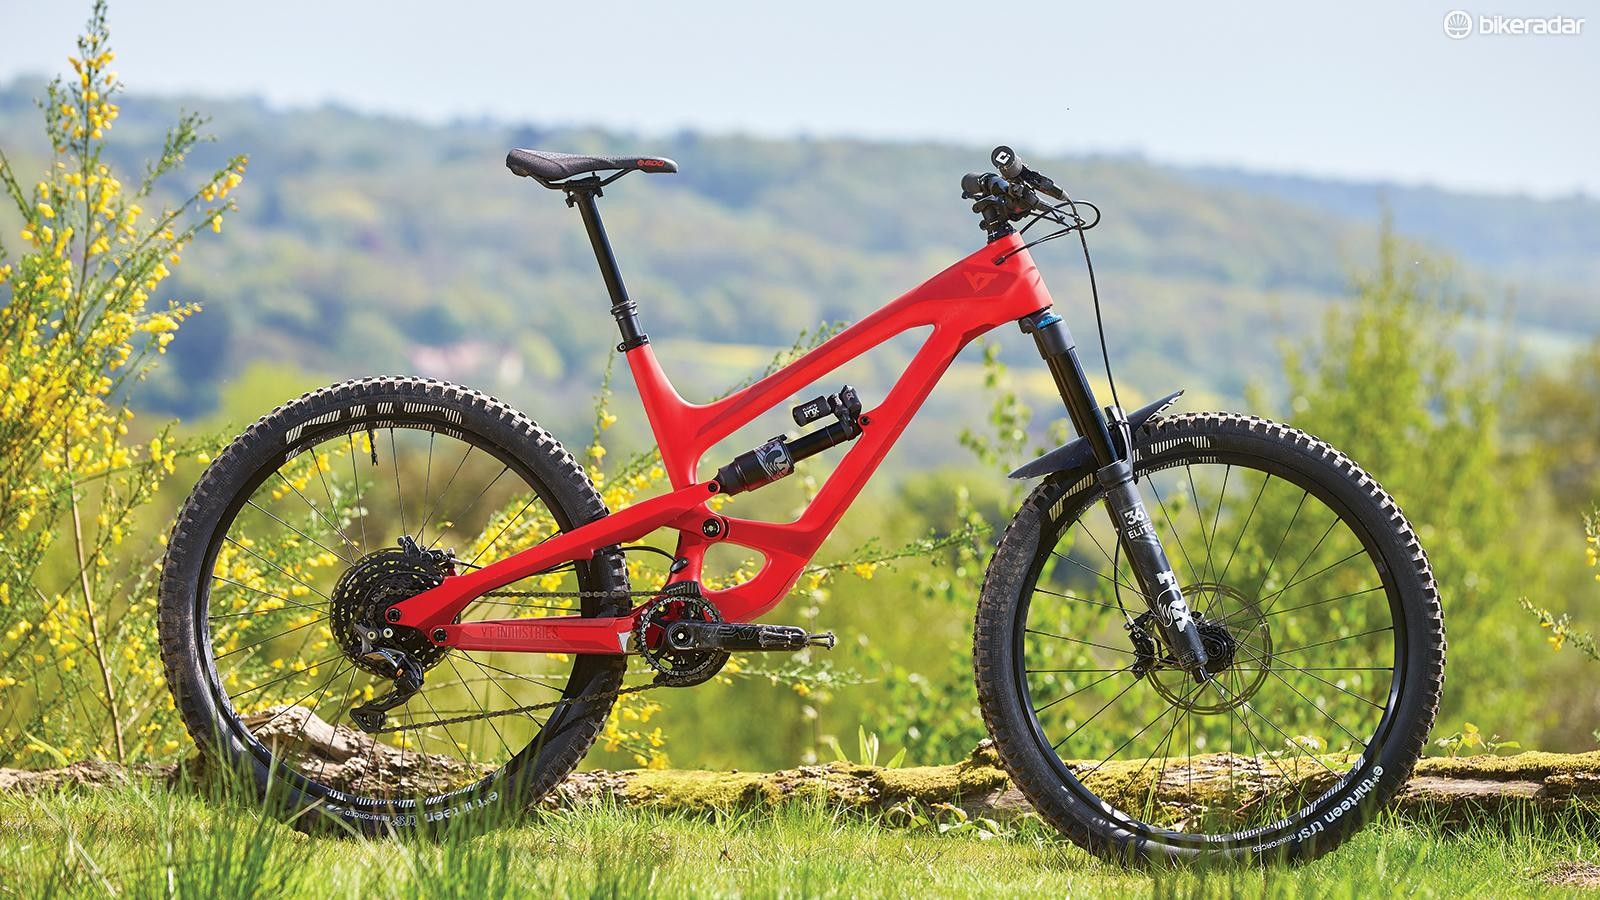 The new Capra is longer and sleeker-looking, with more progressive suspension